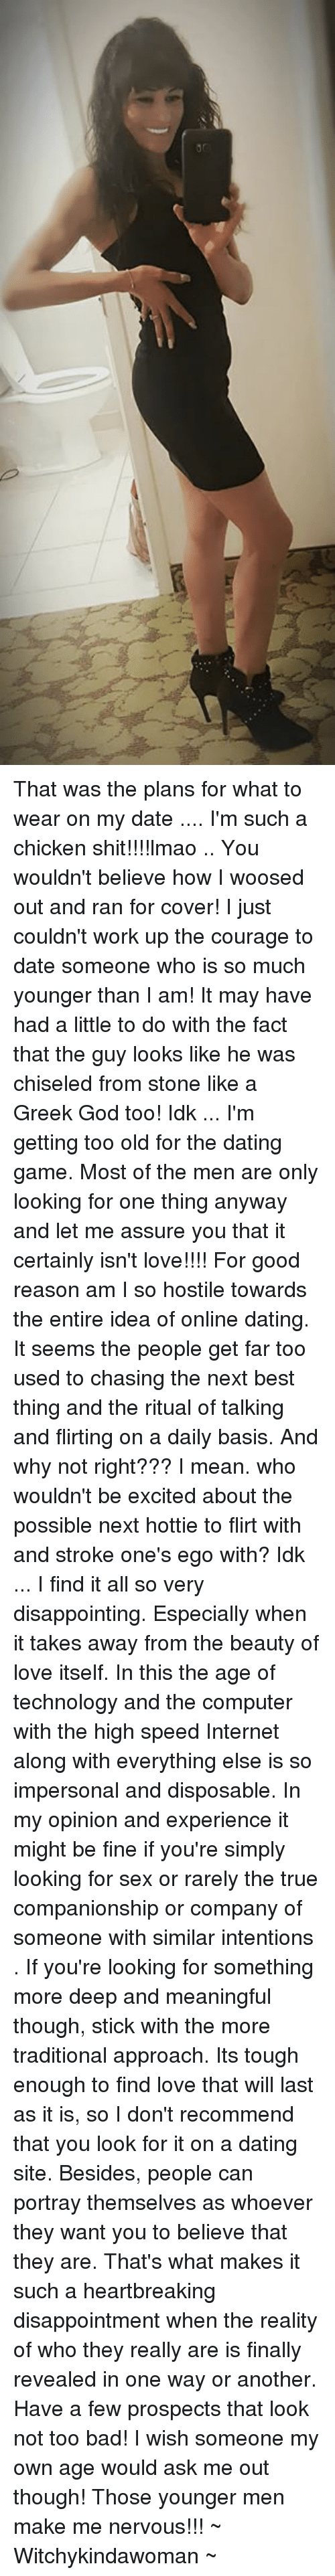 How old do you have to be to start dating